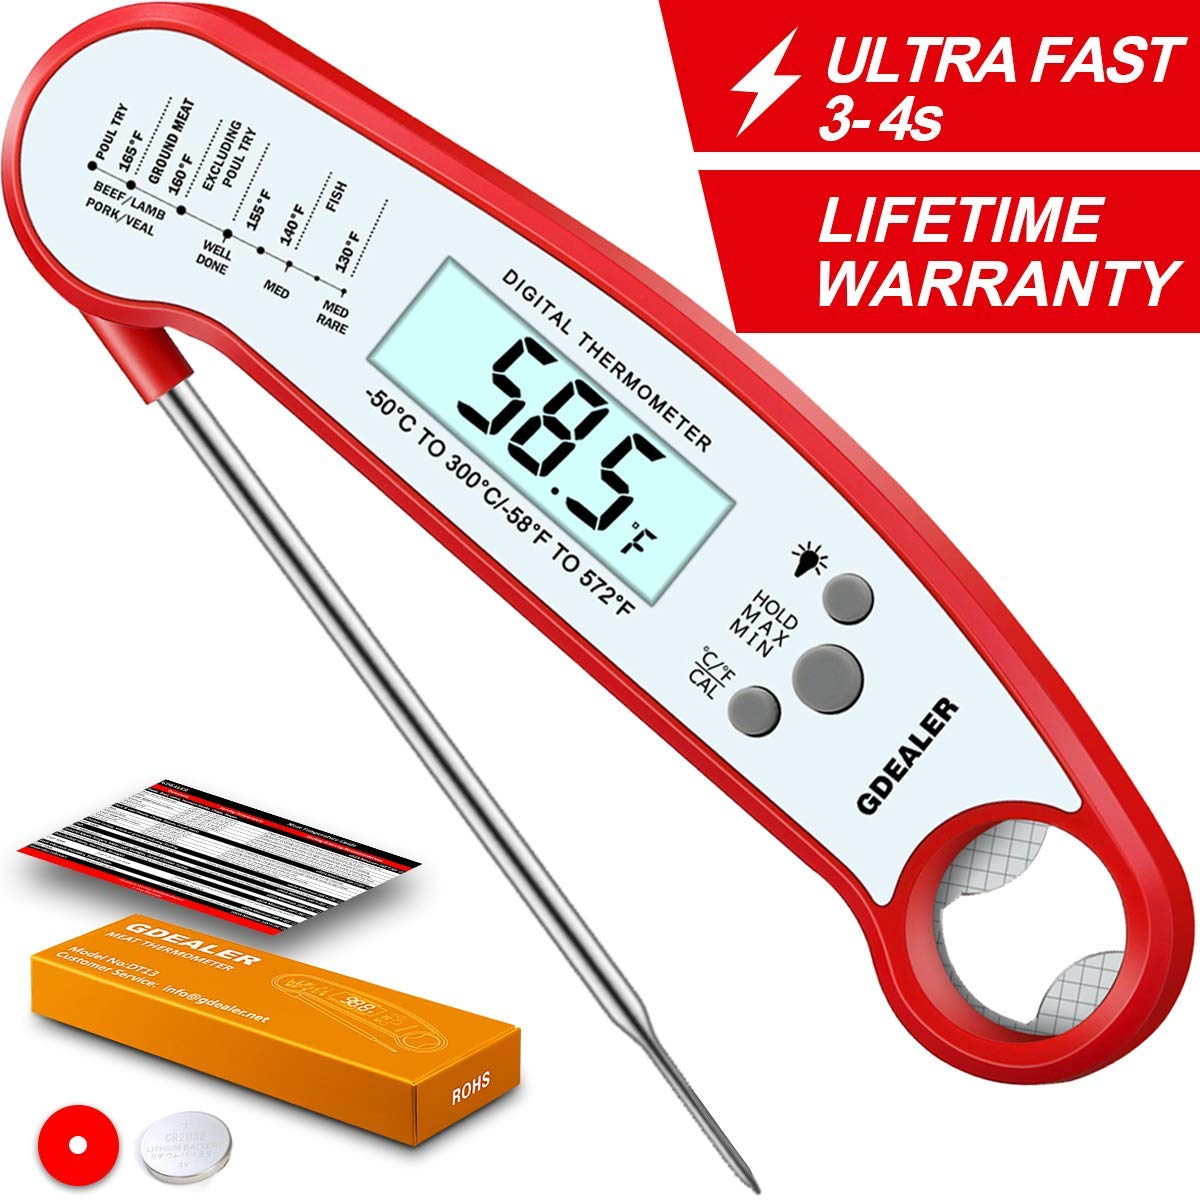 GDEALER Meat Thermometer Waterproof Digital Instant Read Food Thermometer with Bottle Opener Calibration Function Kitchen Thermometer for Cooking Food Candy, BBQ Grill, Smokers